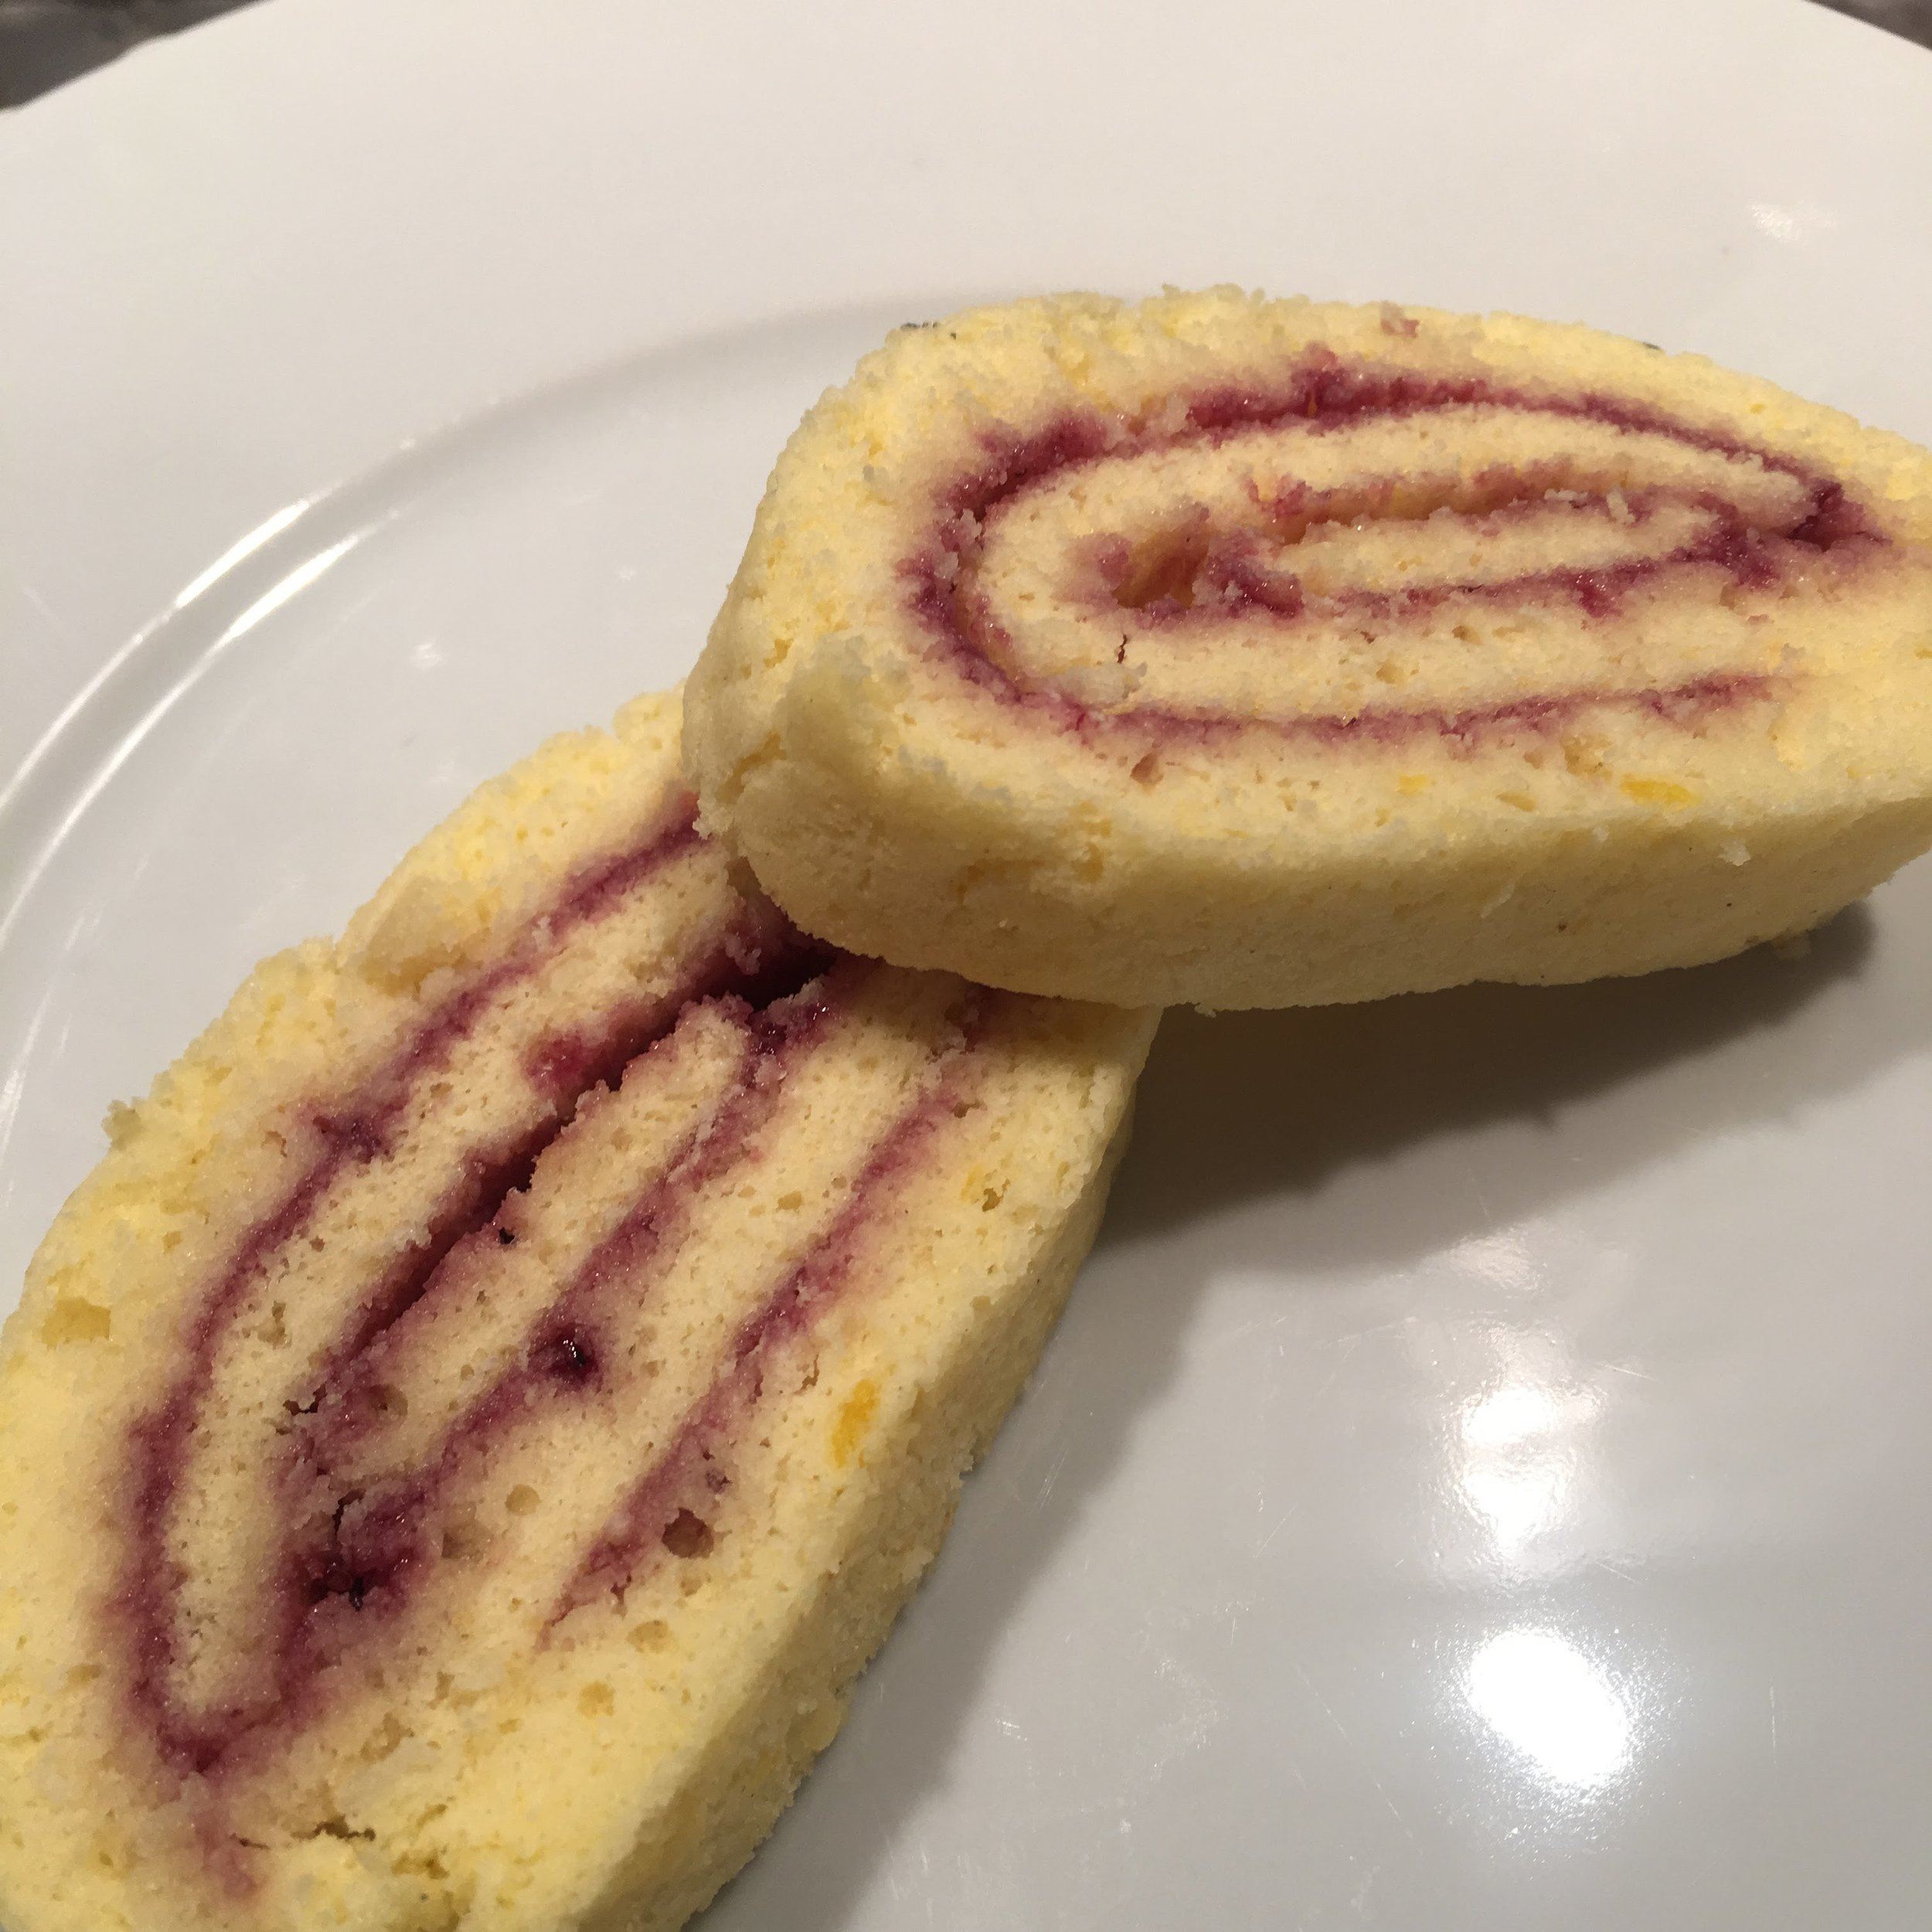 Slices of Boston Strong Jelly Roll filled with a mixture of strained blueberry preserves and strawberry jelly.